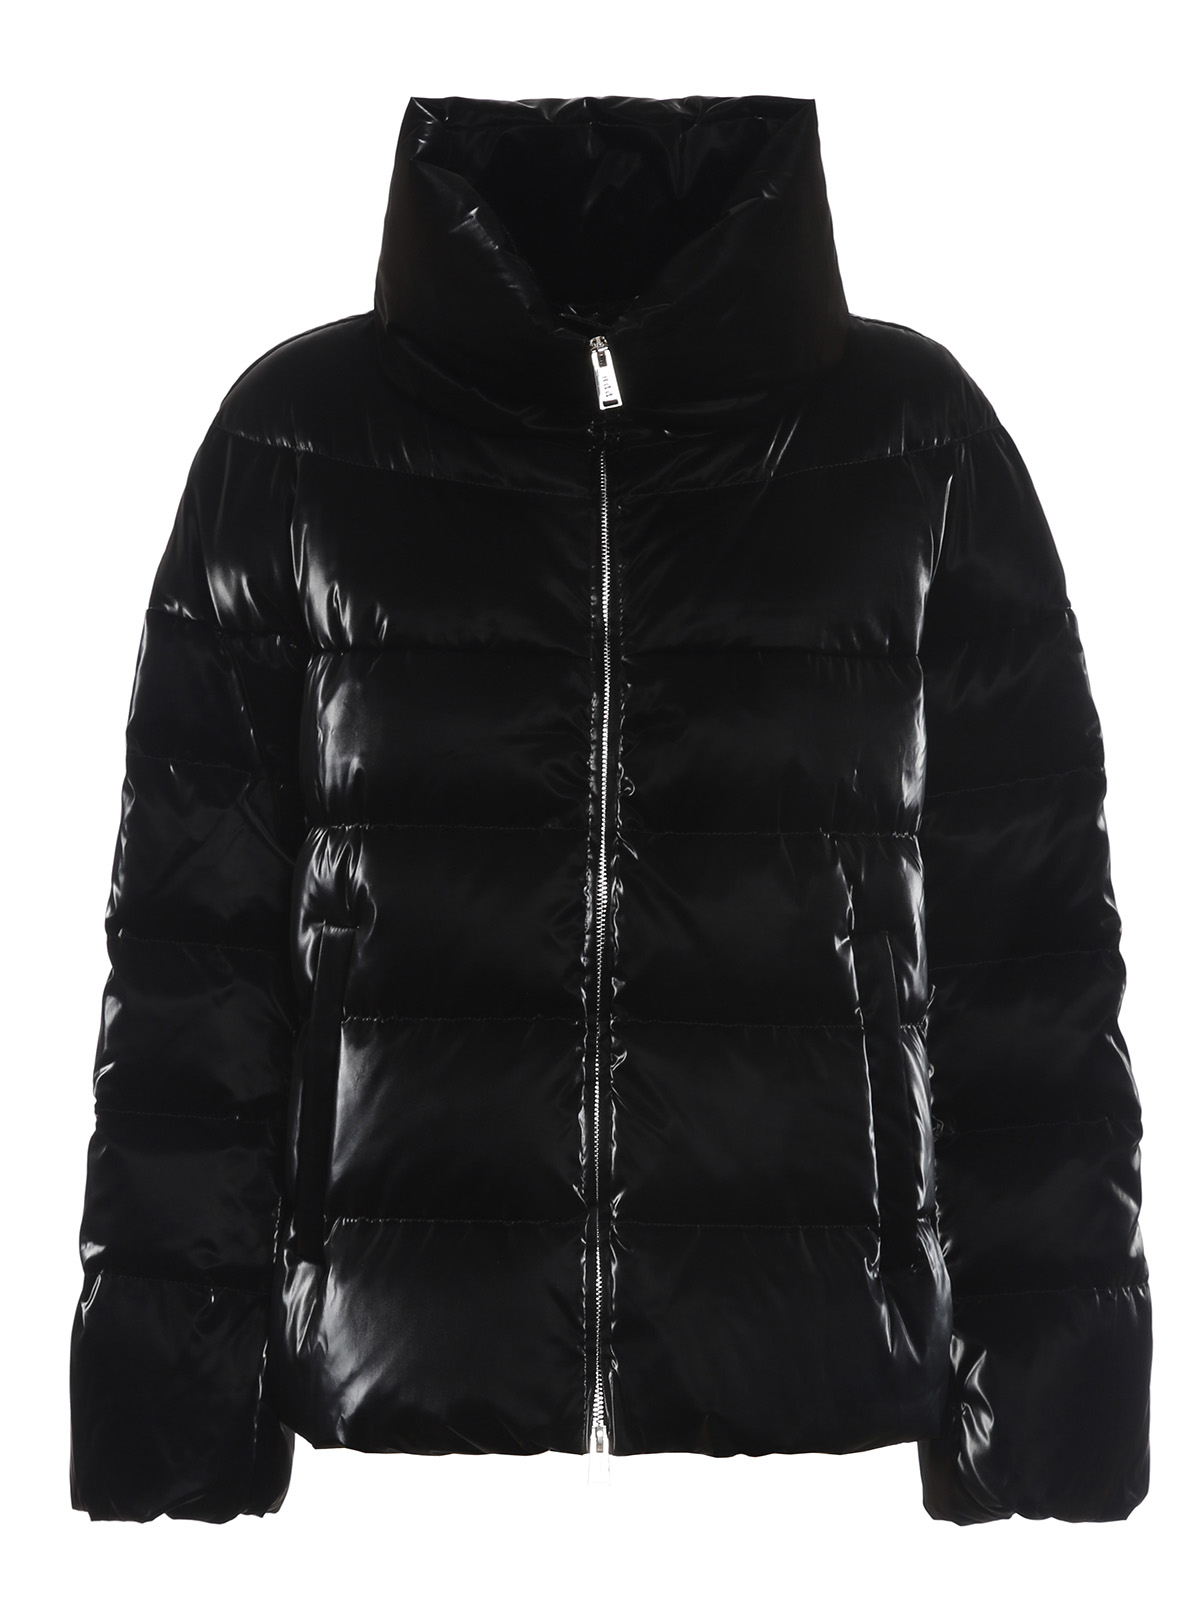 Add PATENT EFFECT SHORT PUFFER JACKET